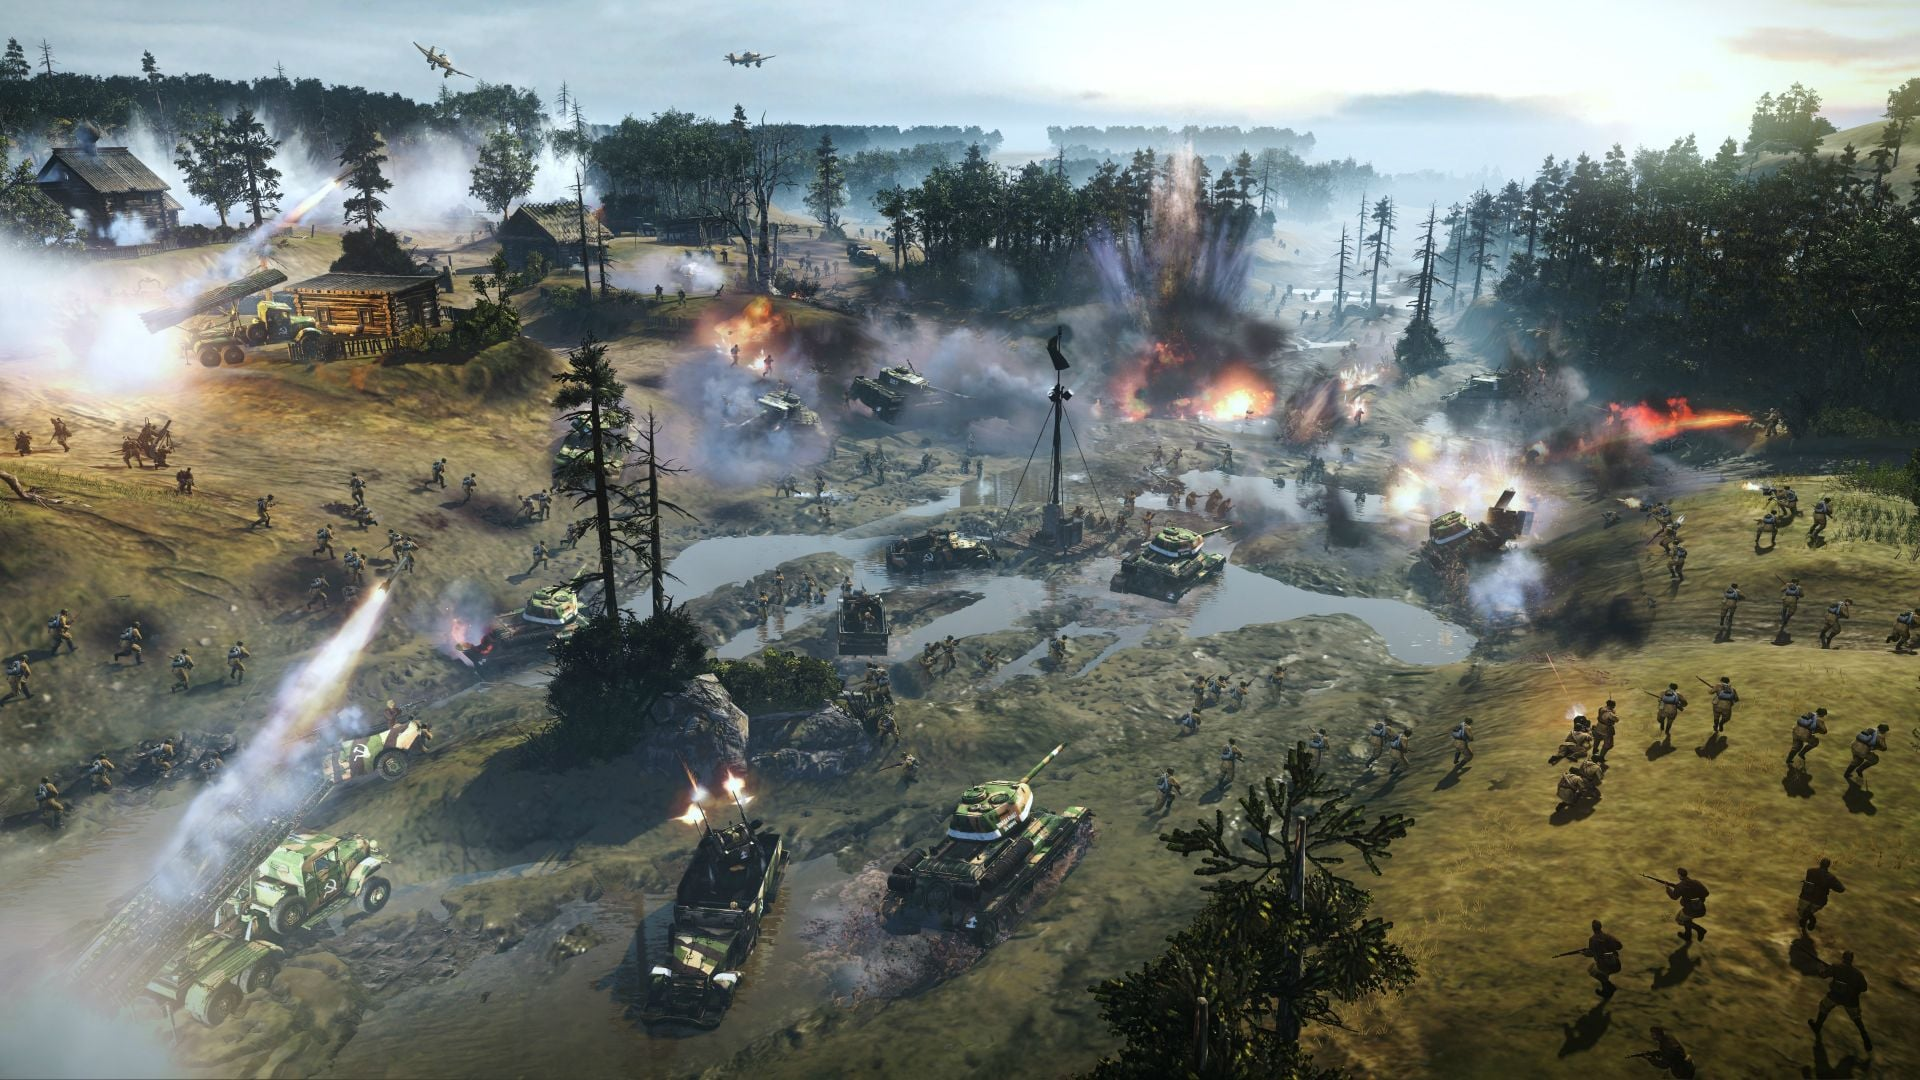 The bleak outlook when everything on the battlefield, including the terrain goes FUBAR.